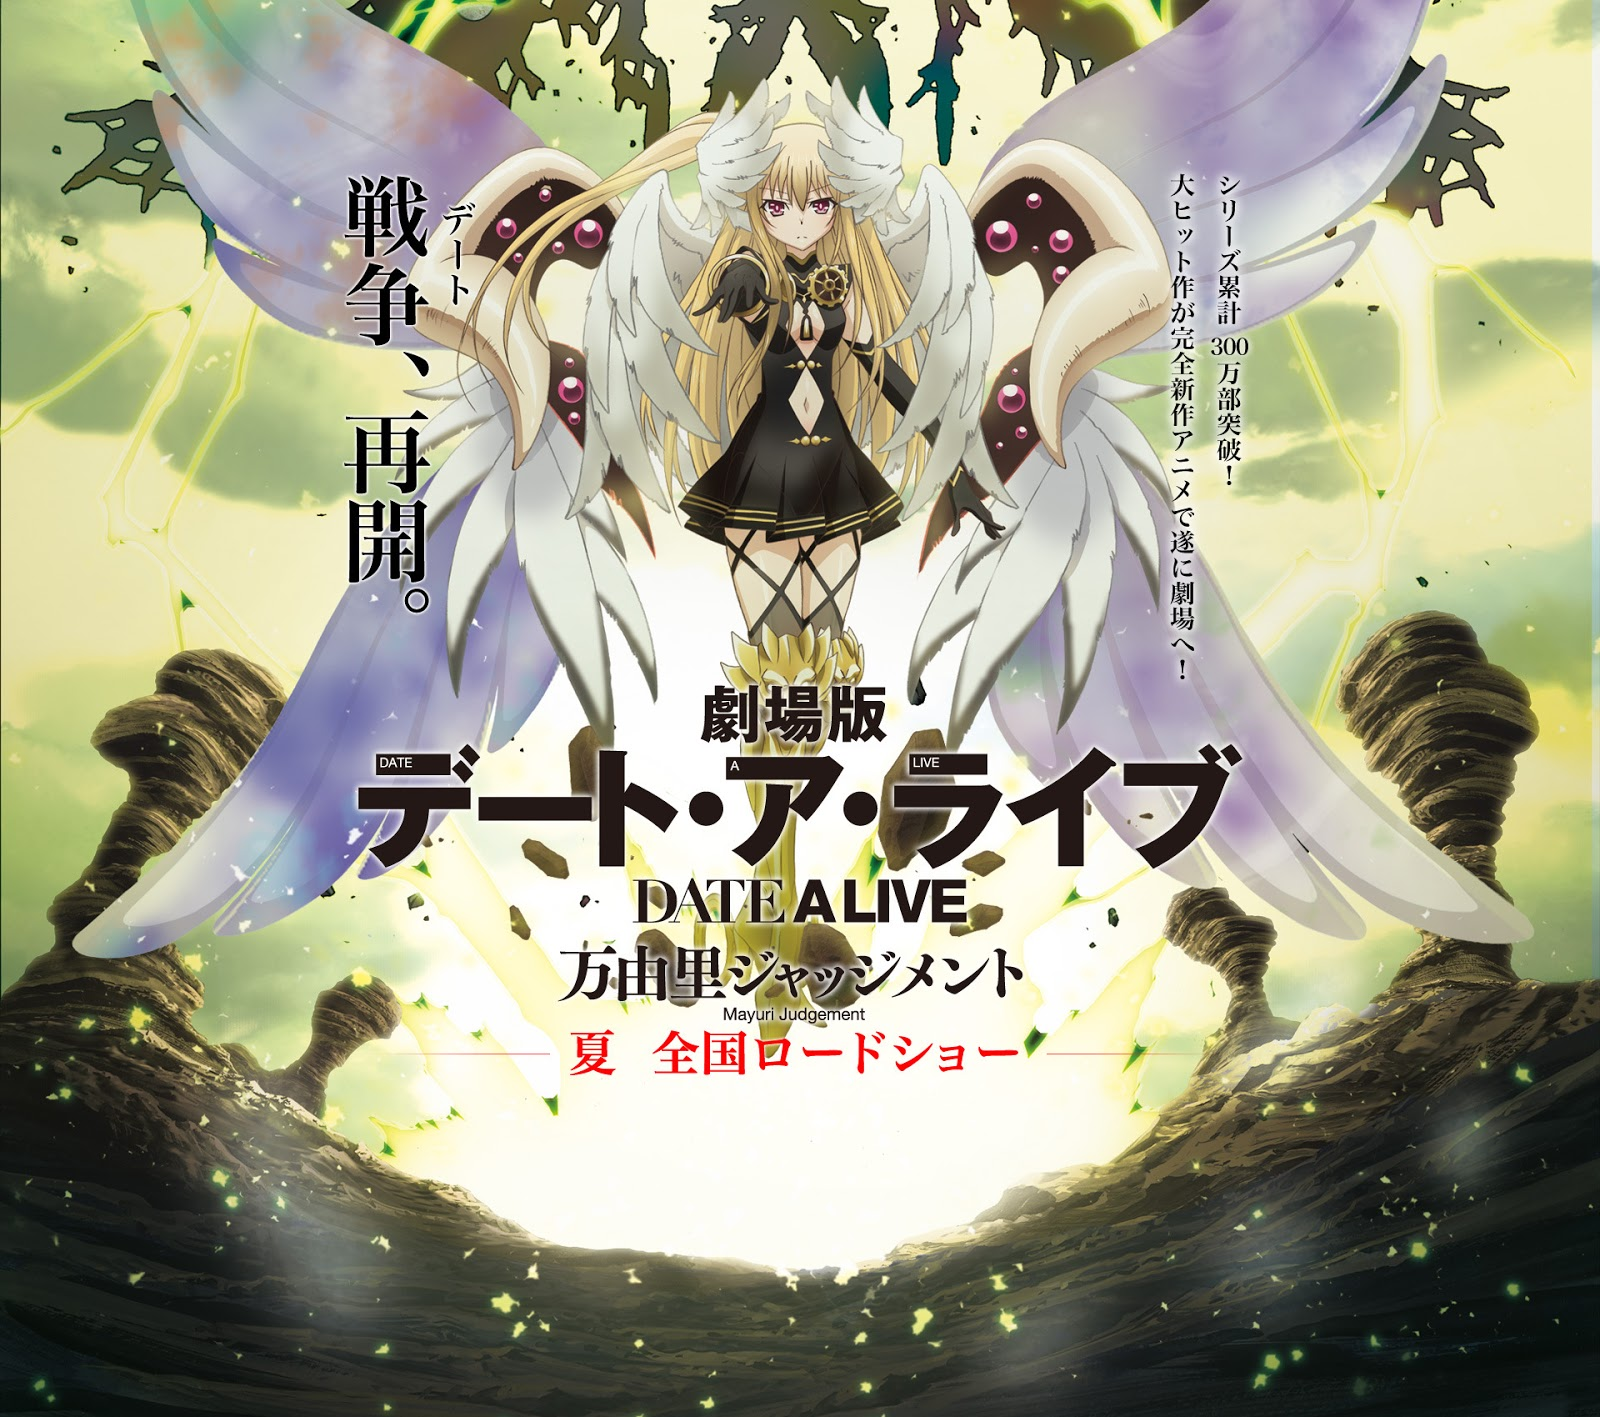 Nonton Anime Sub Indo Batch: Date A Live Movie: Mayuri Judgment Subtitle Indonesia